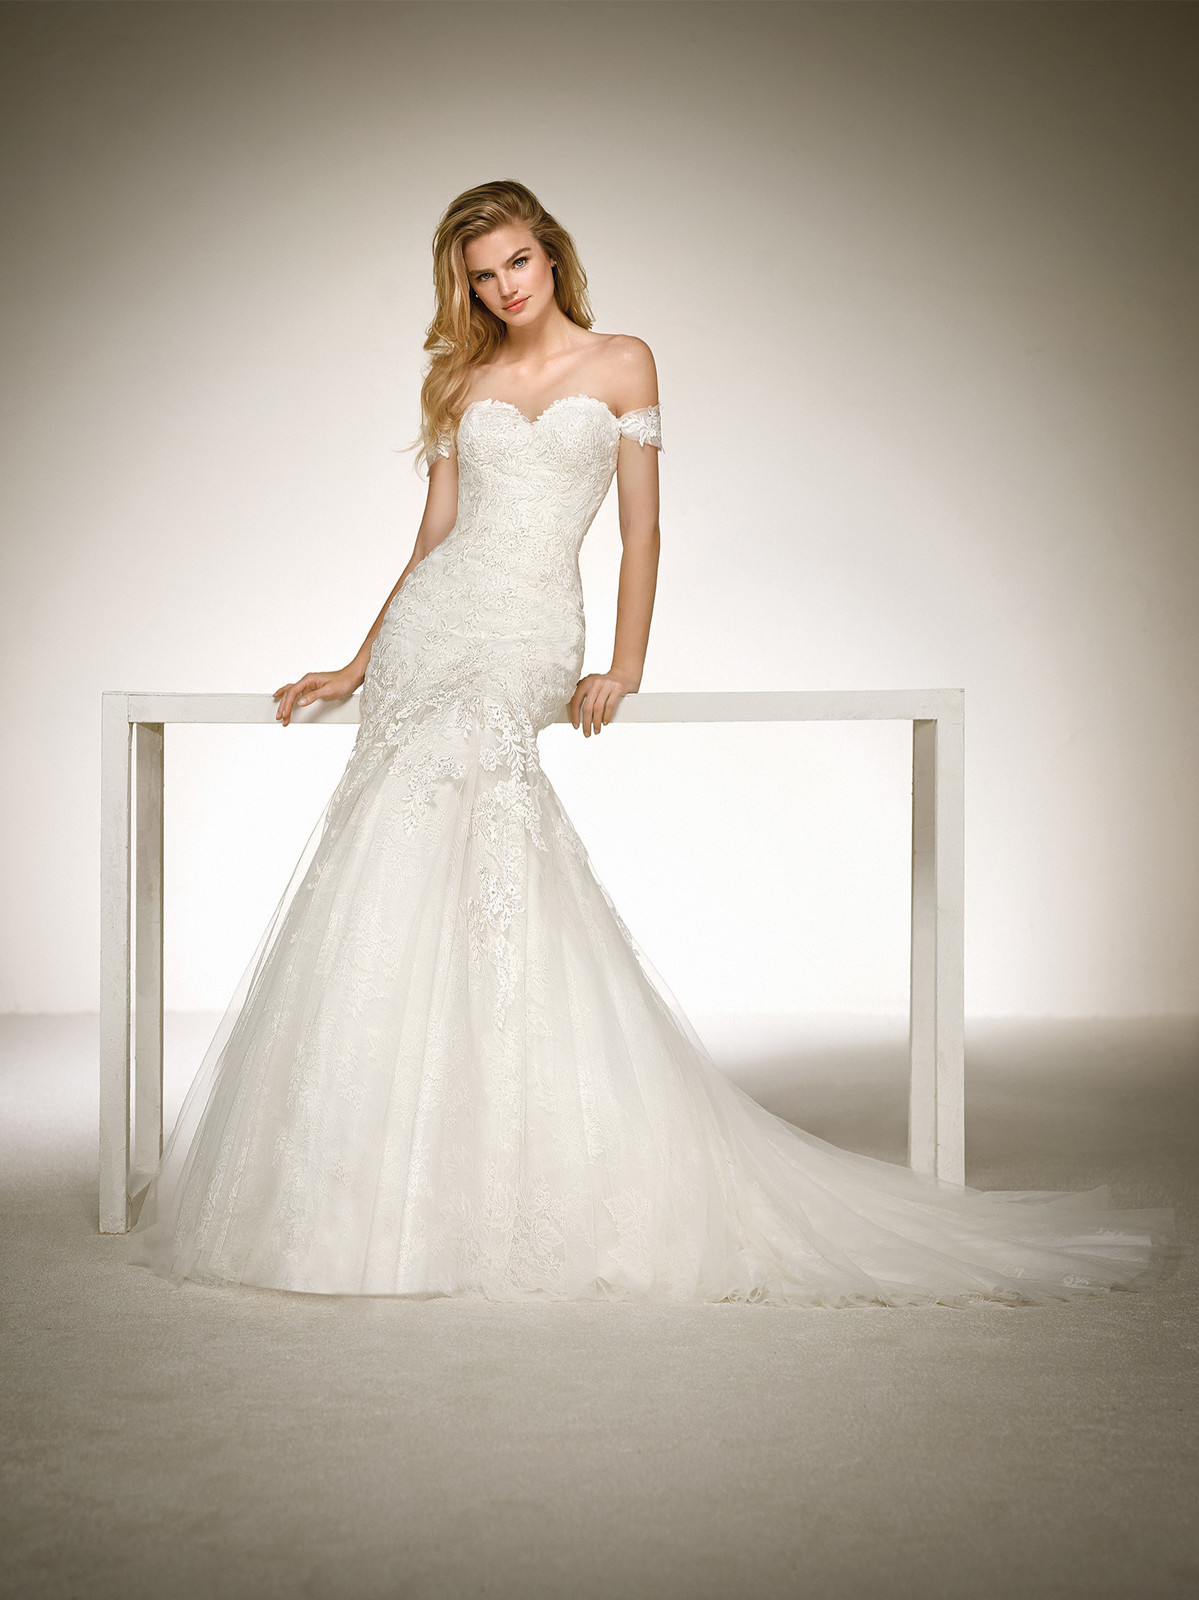 Bliss bridal bolton bridal gowns a sweetheart neckline and a mermaid skirt two luxurious ingredients for creating a wedding dress that exploits the sensuality of every curve ombrellifo Image collections